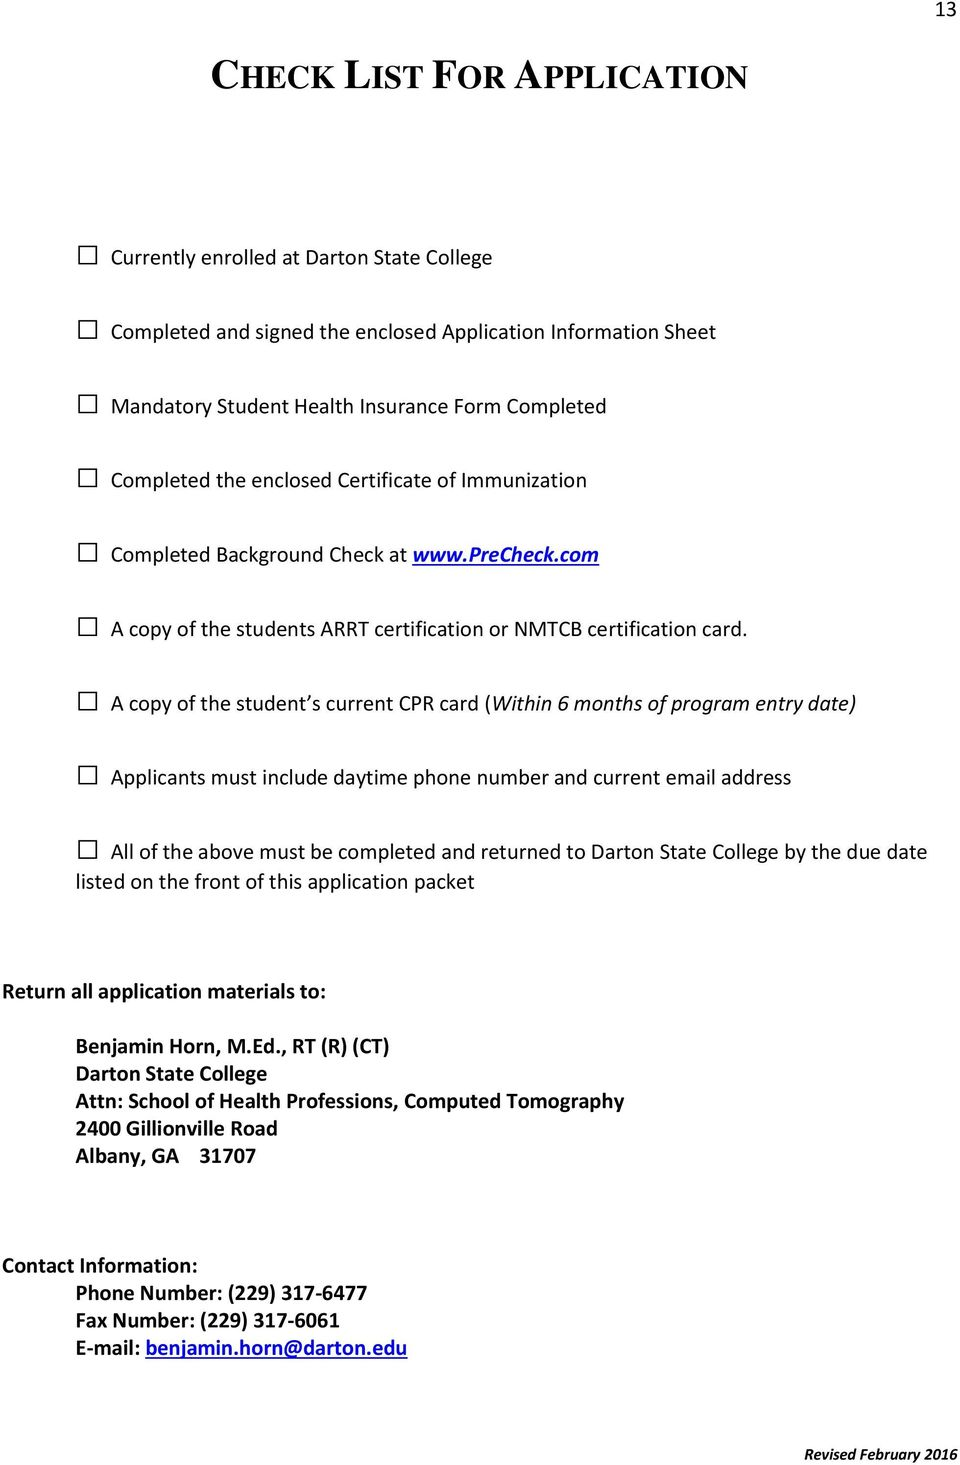 A copy of the student s current CPR card (Within 6 months of program entry date) Applicants must include daytime phone number and current email address All of the above must be completed and returned